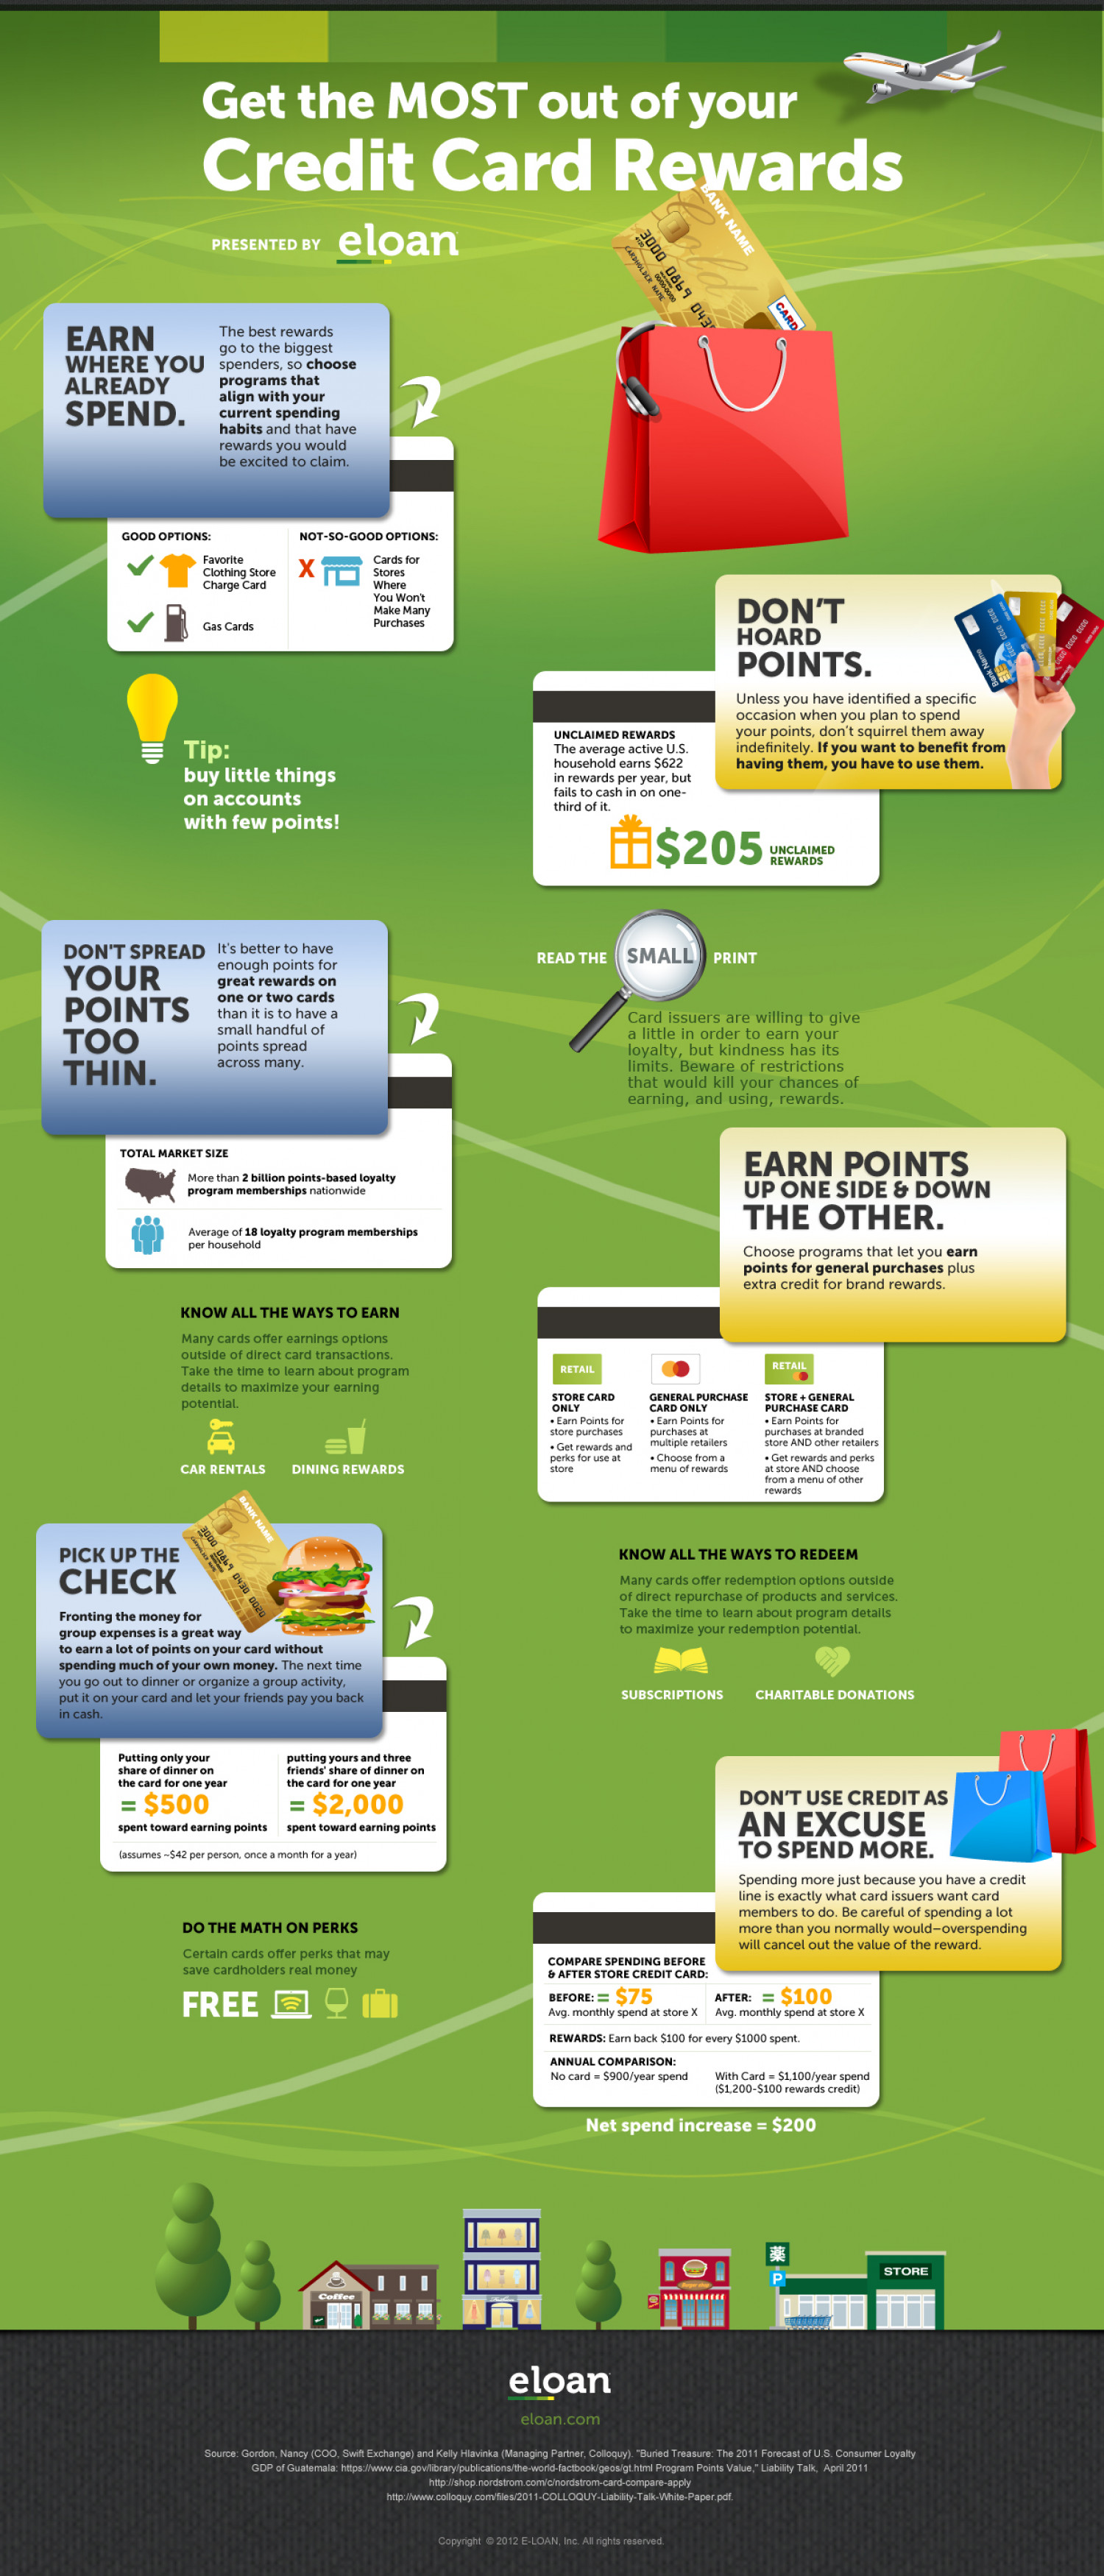 Get the Most Out of Your Credit Card Rewards Infographic